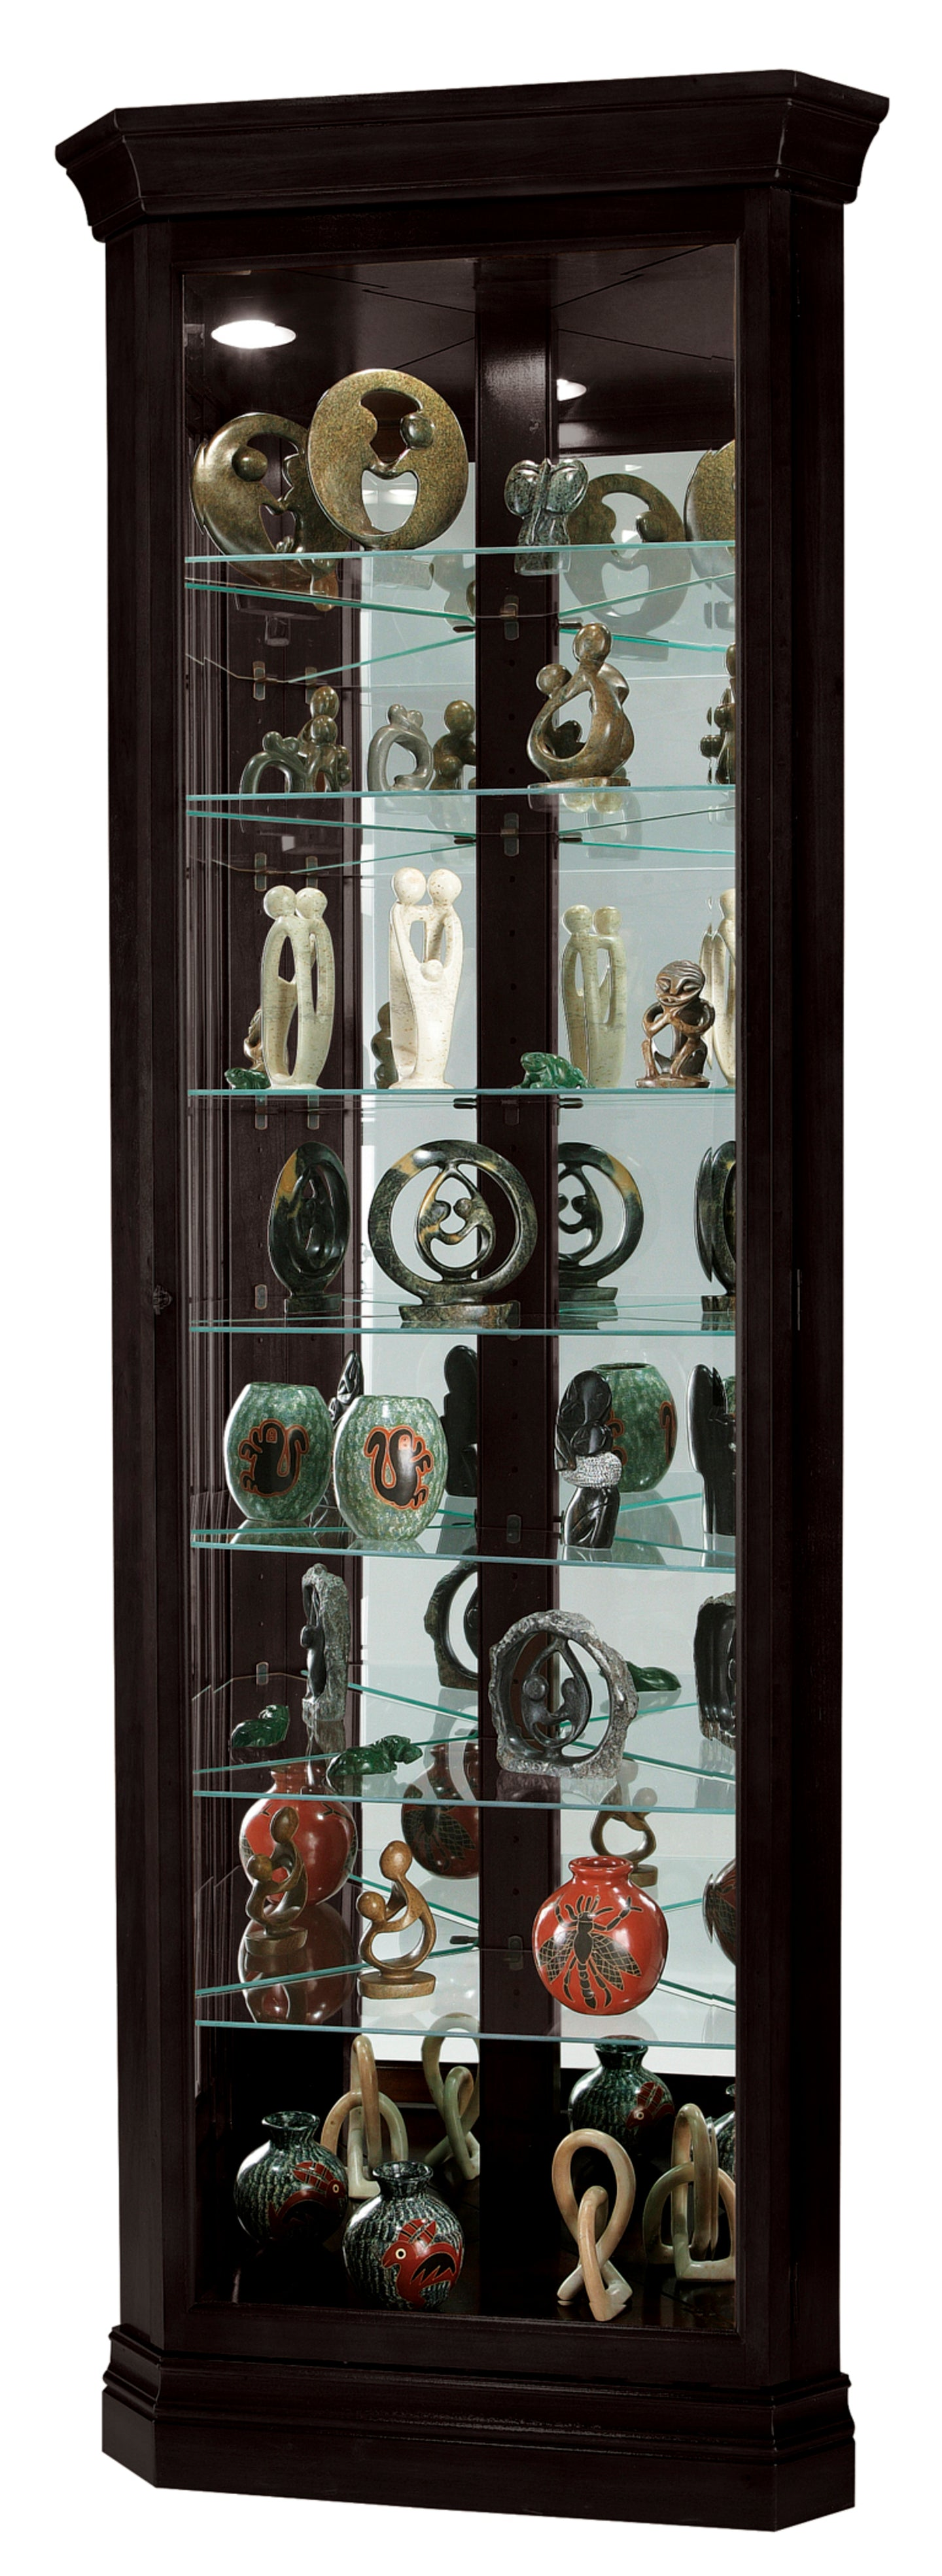 Howard Miller Duane Corner Curio Cabinet 680487 - Curios And More